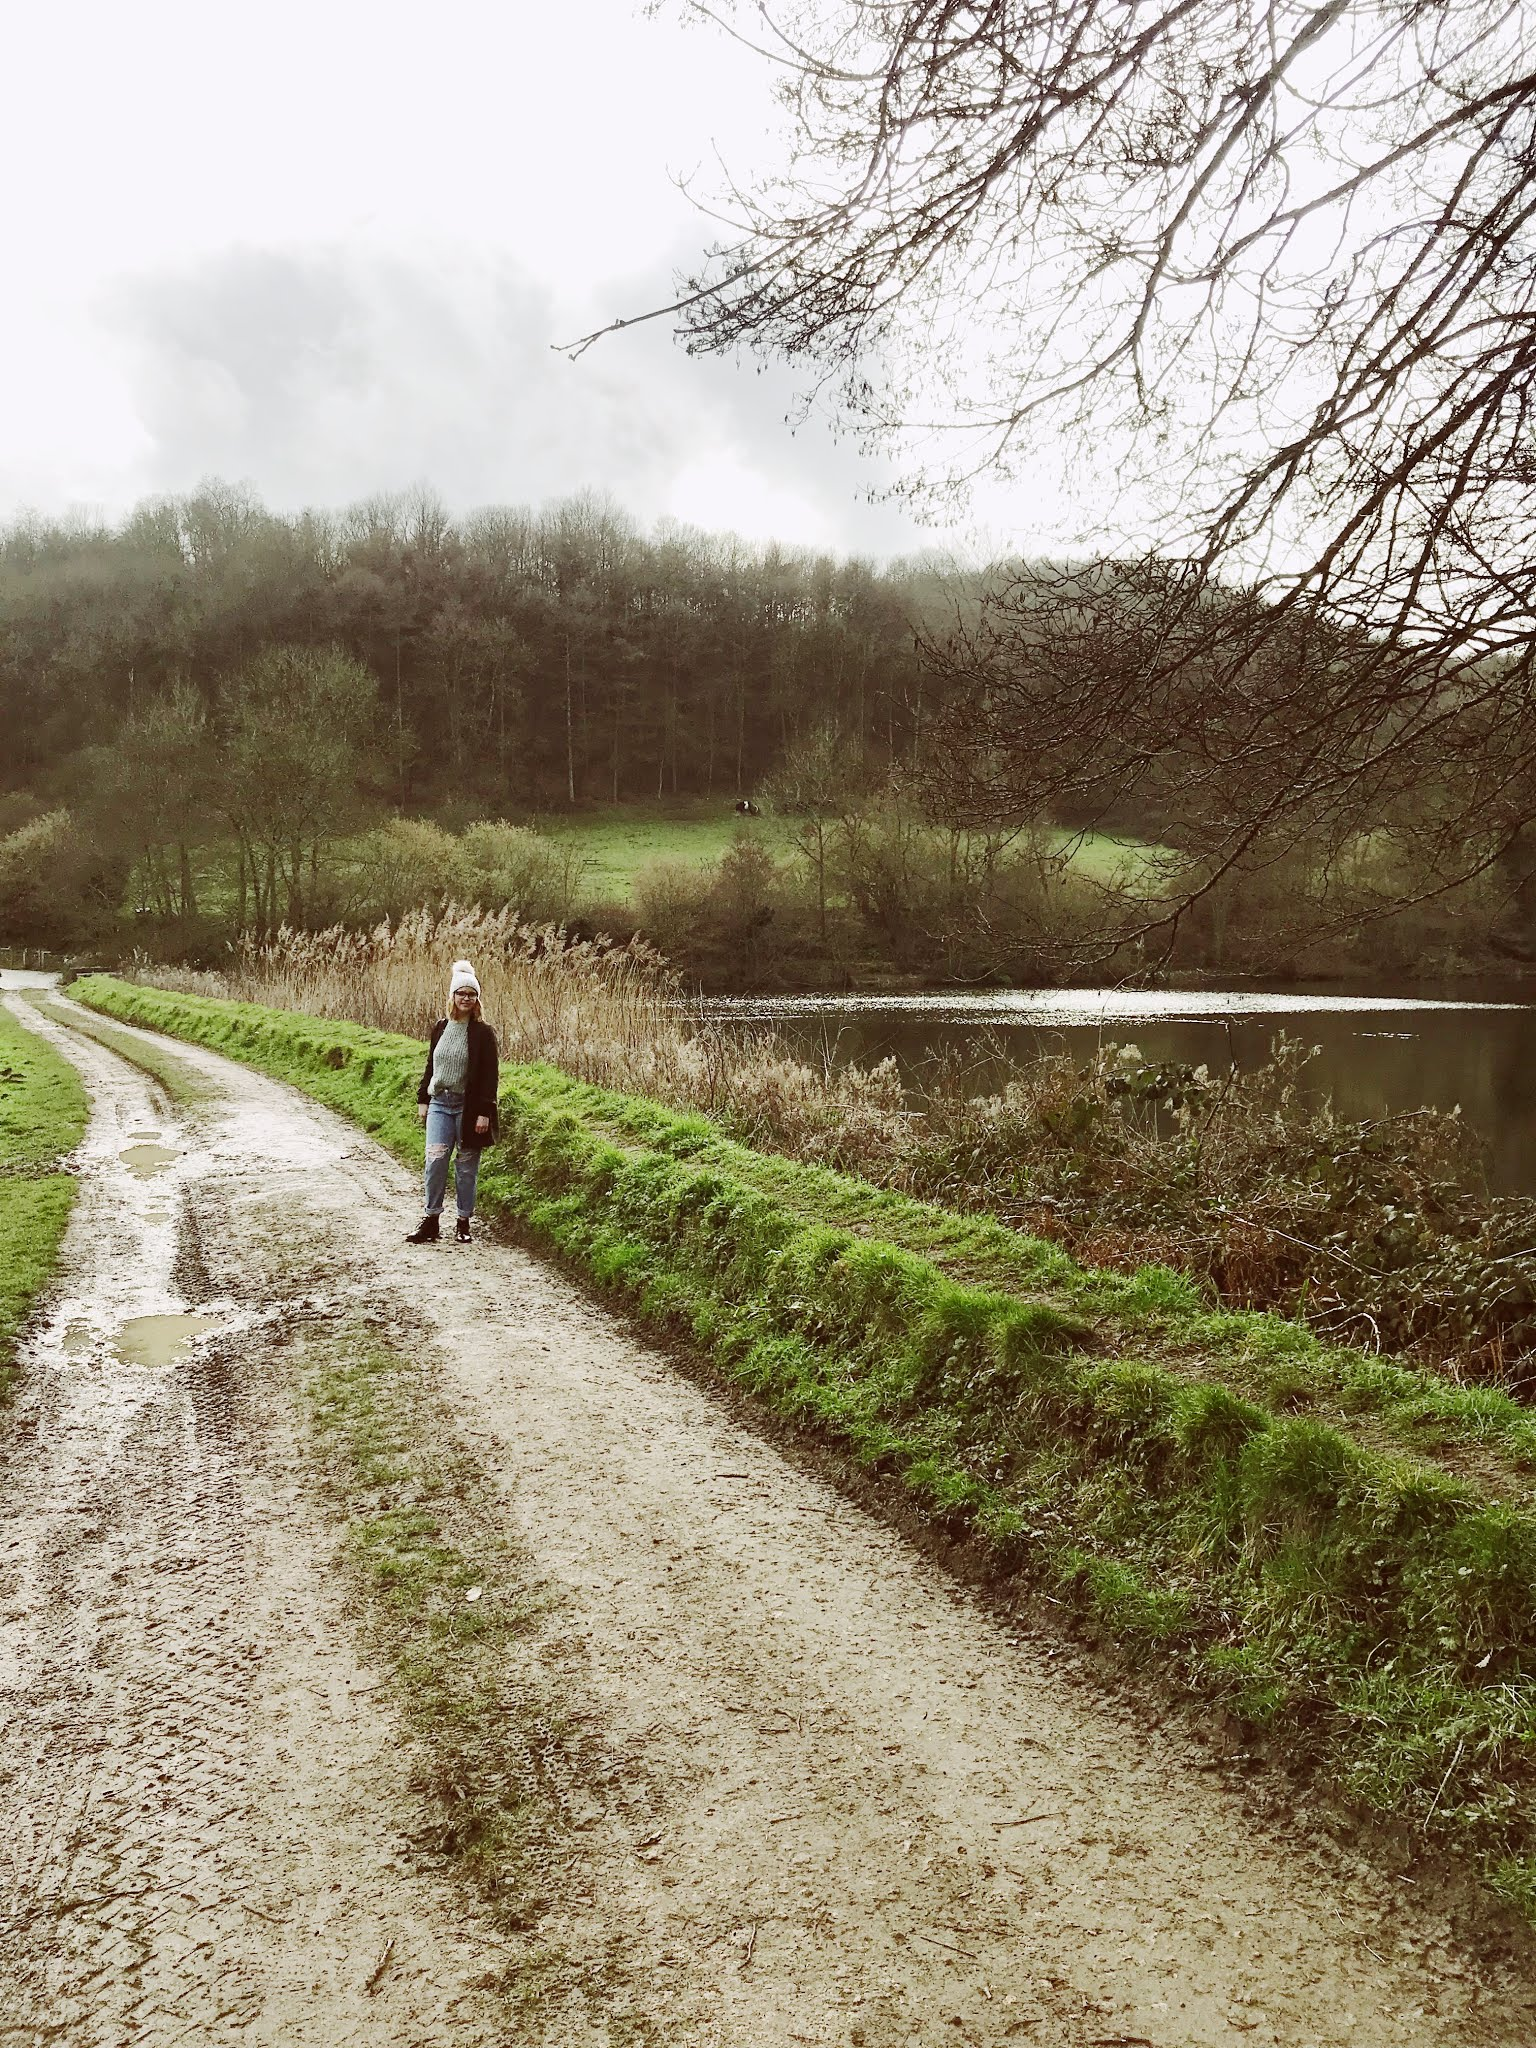 Blogger Chloe Harriets out of a winter walk